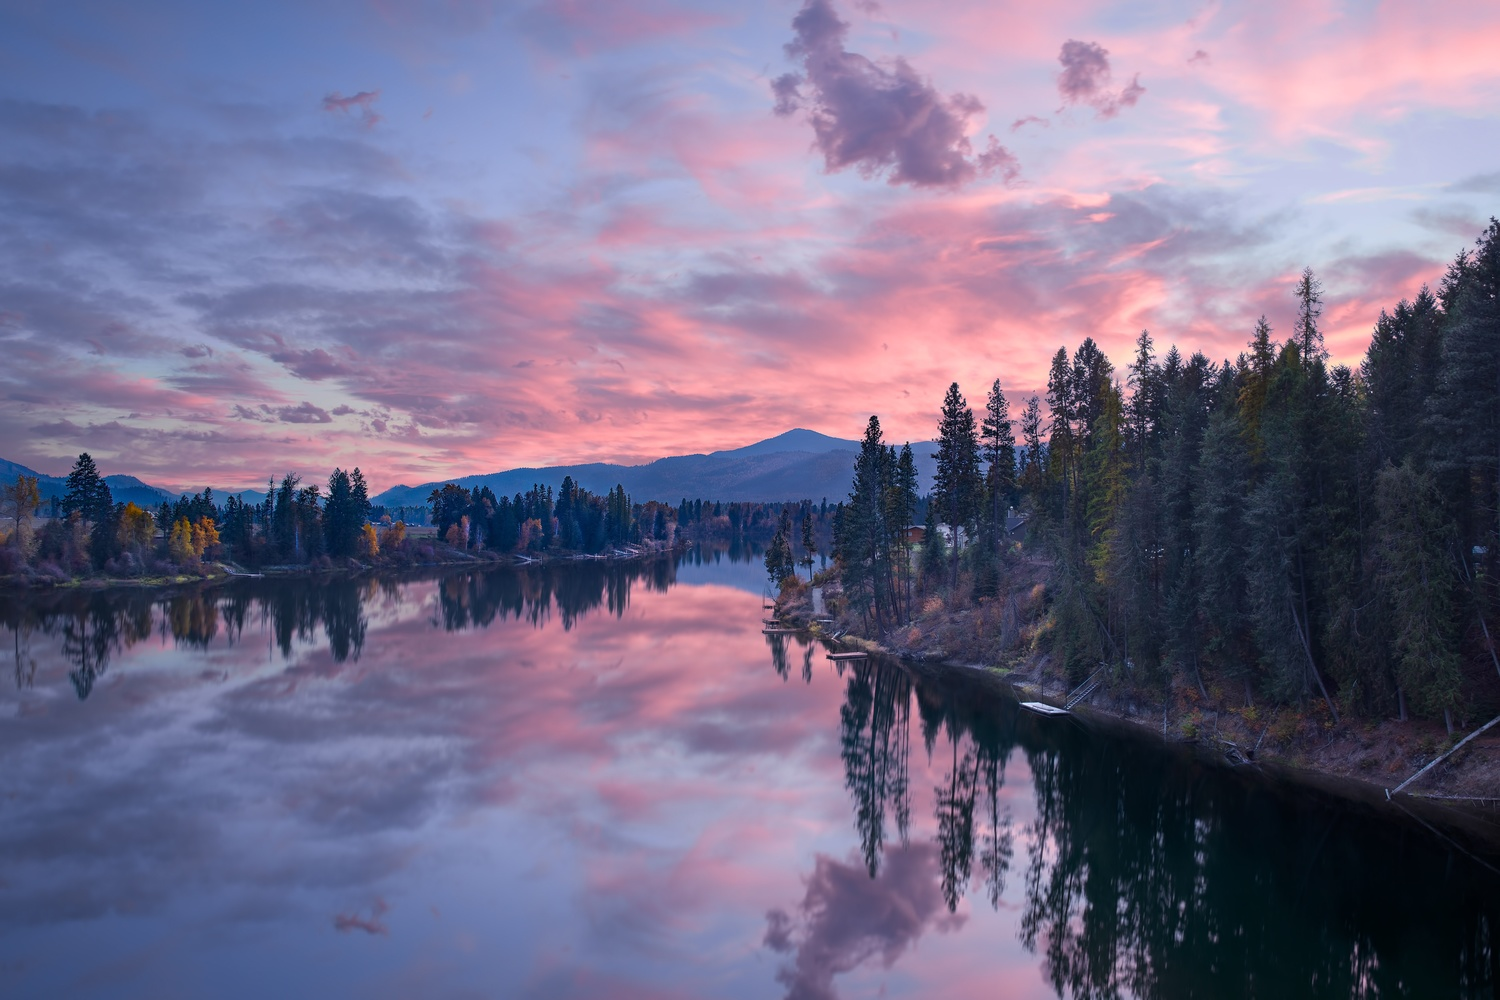 North Pend Oreille Sunset by Christopher Scott